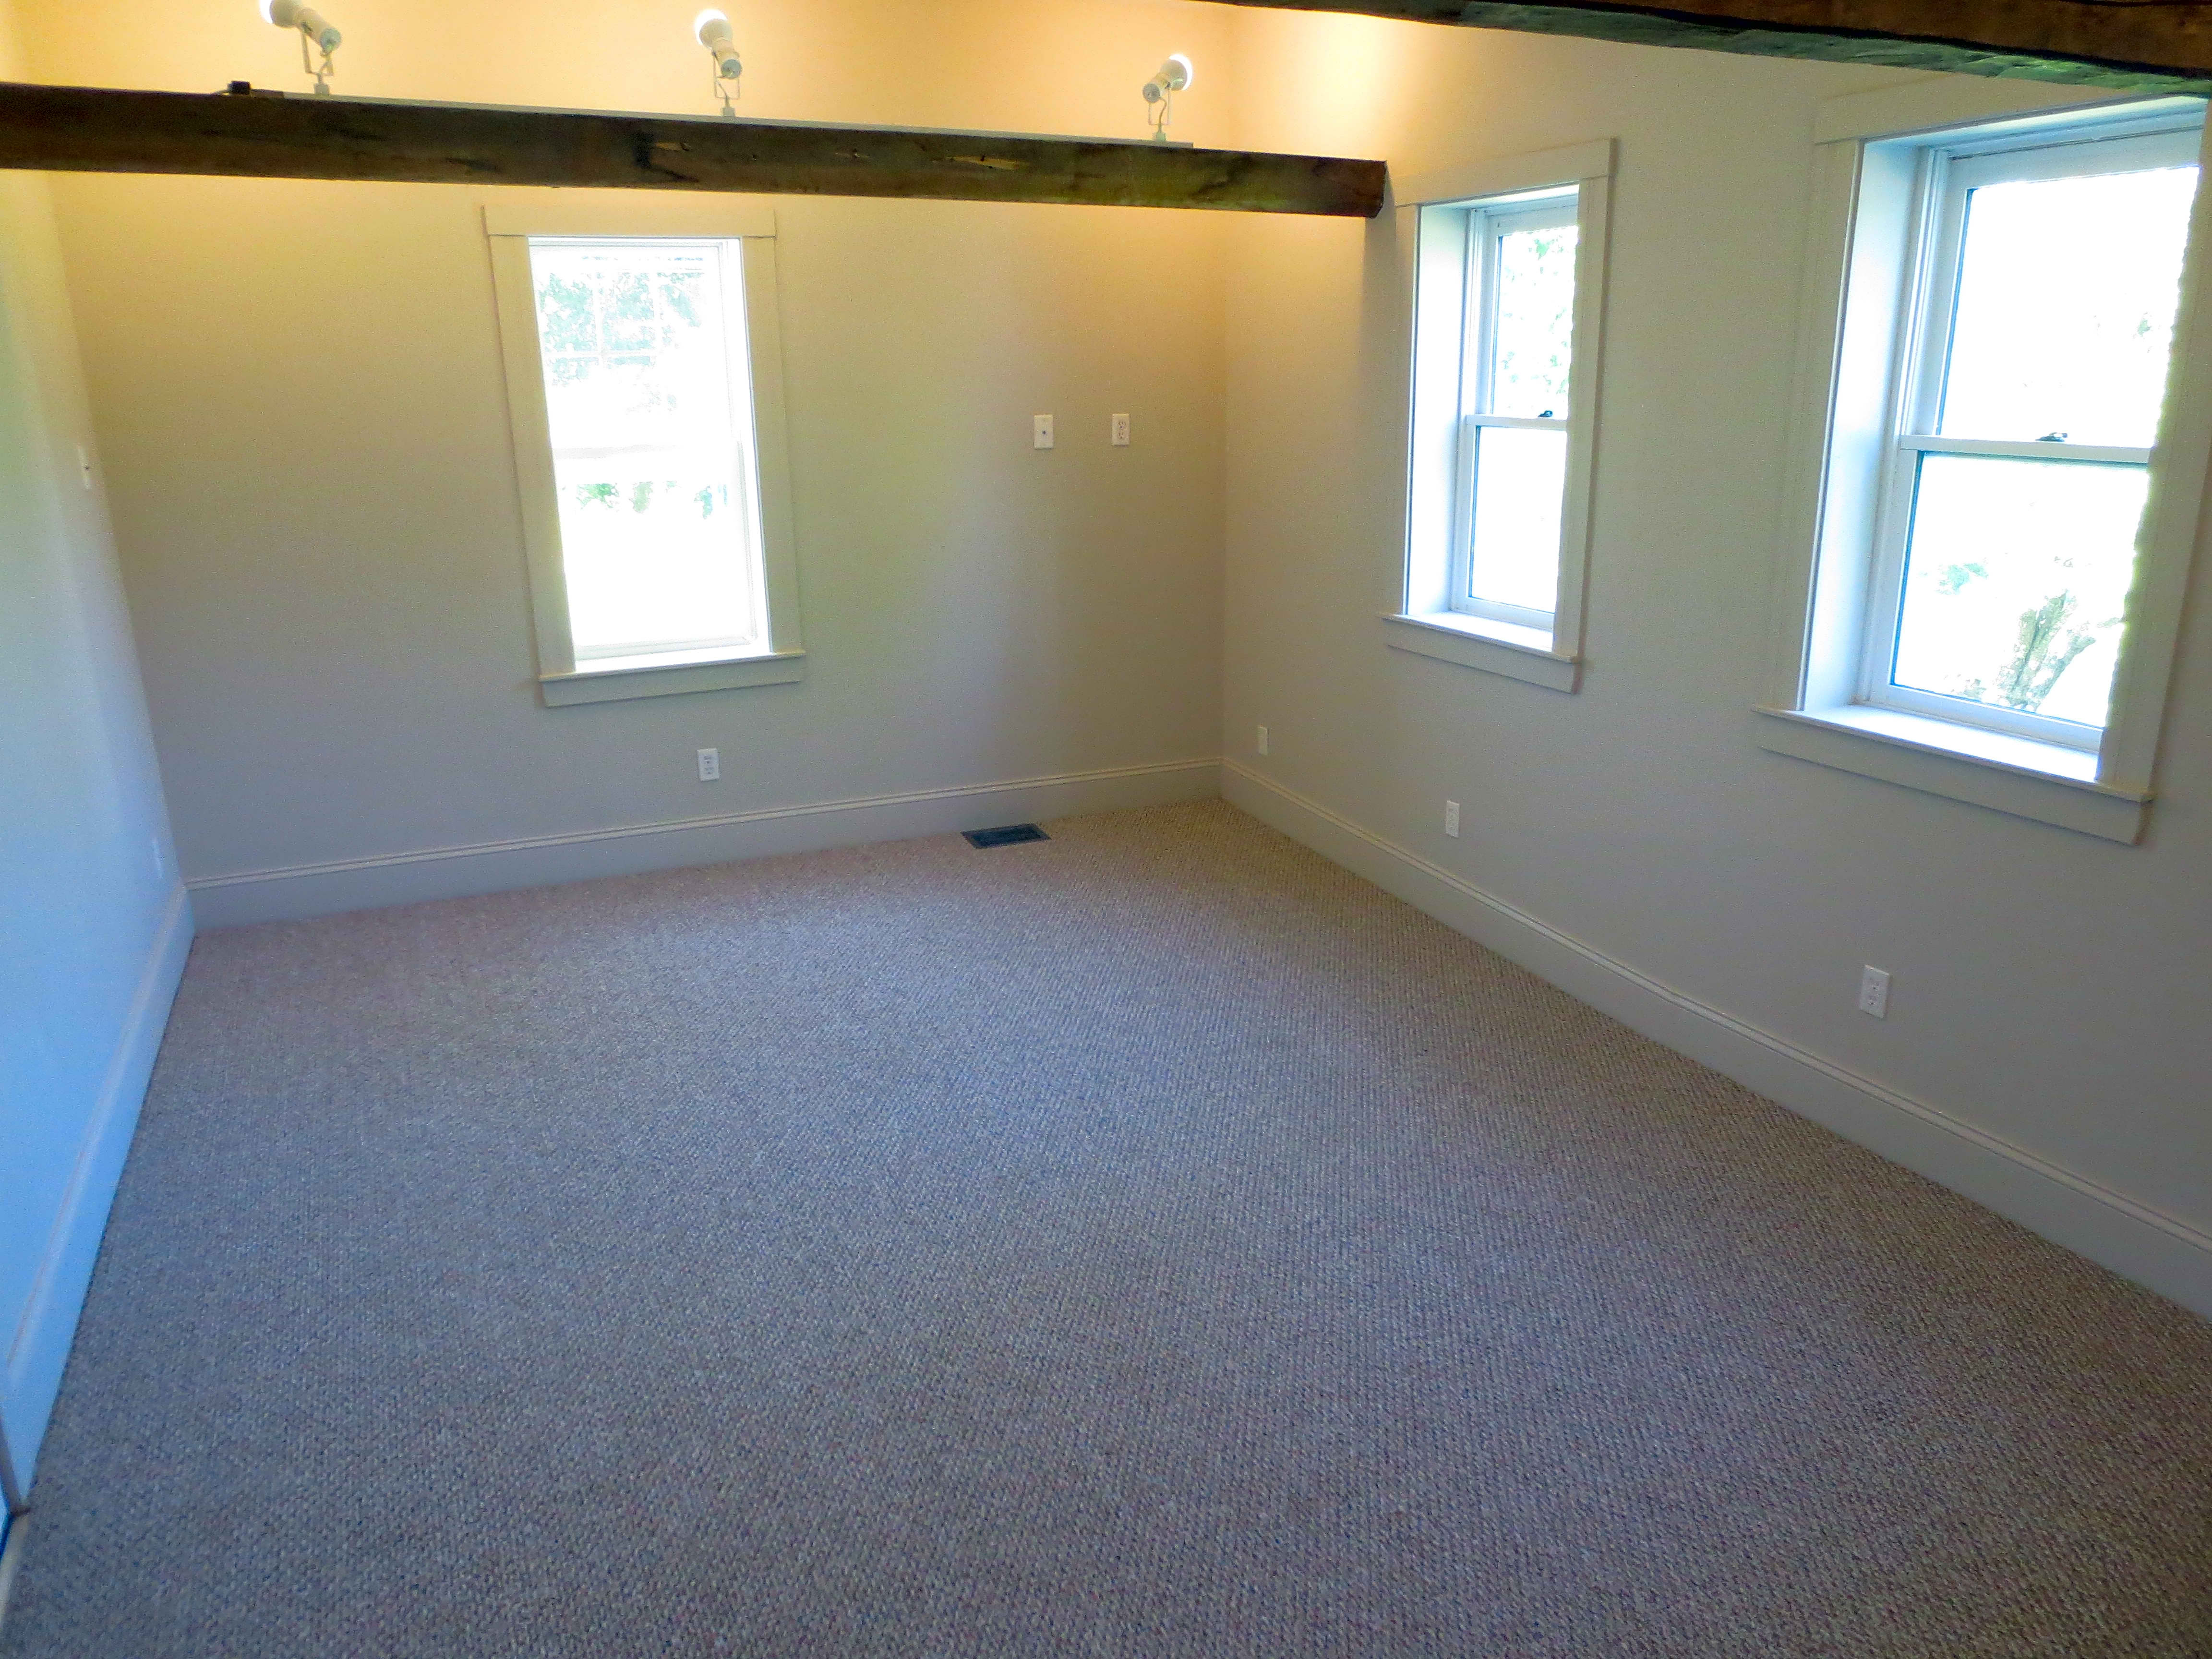 House for Rent in Dedham